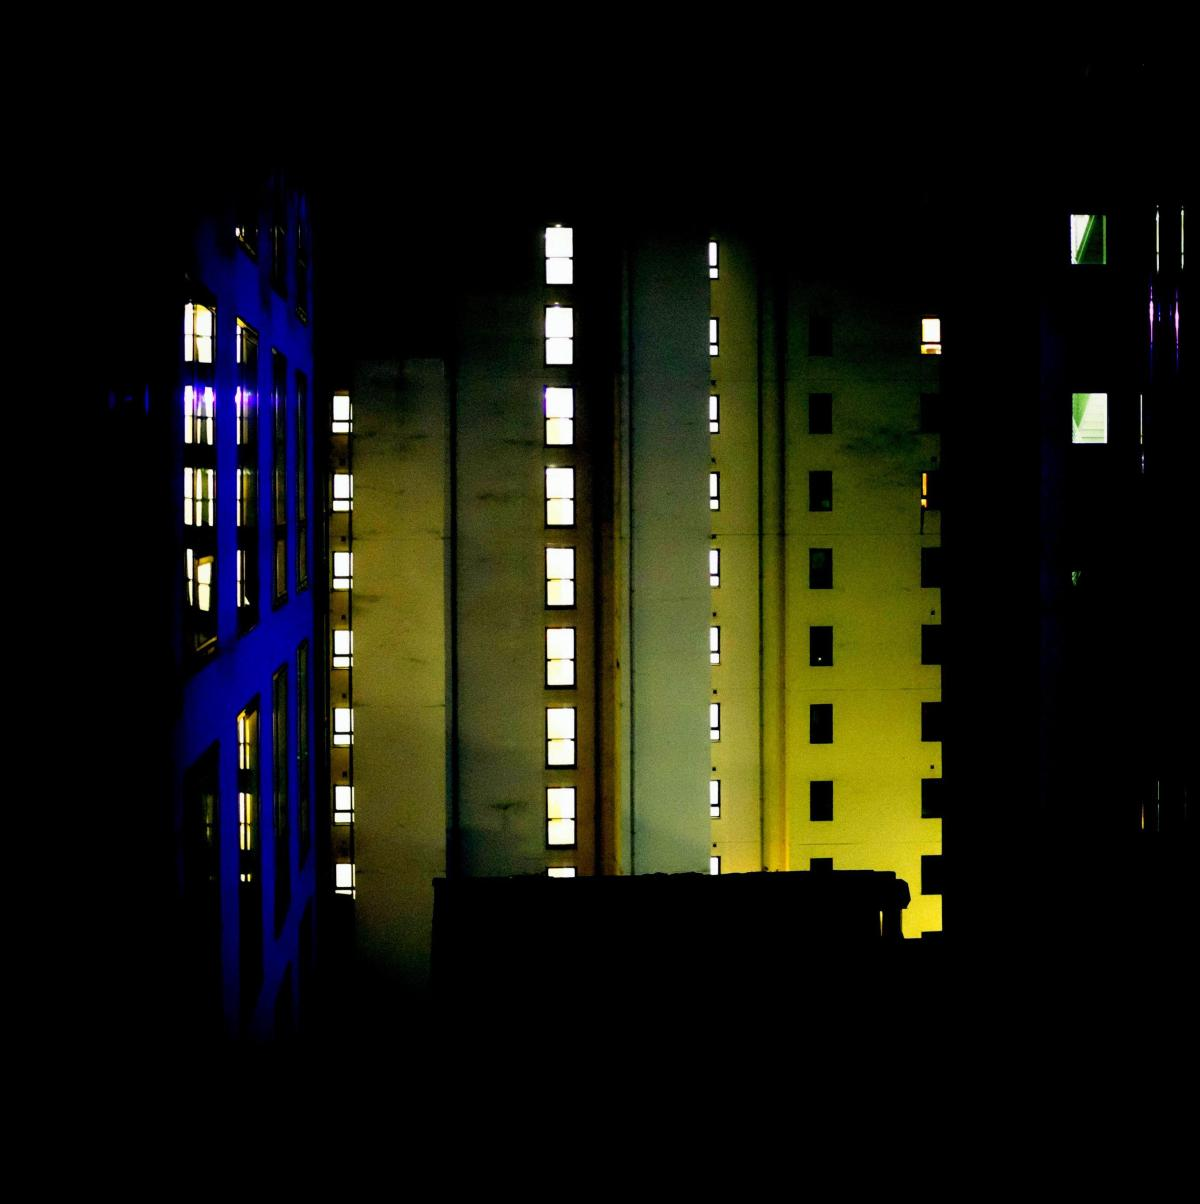 Tower block lights